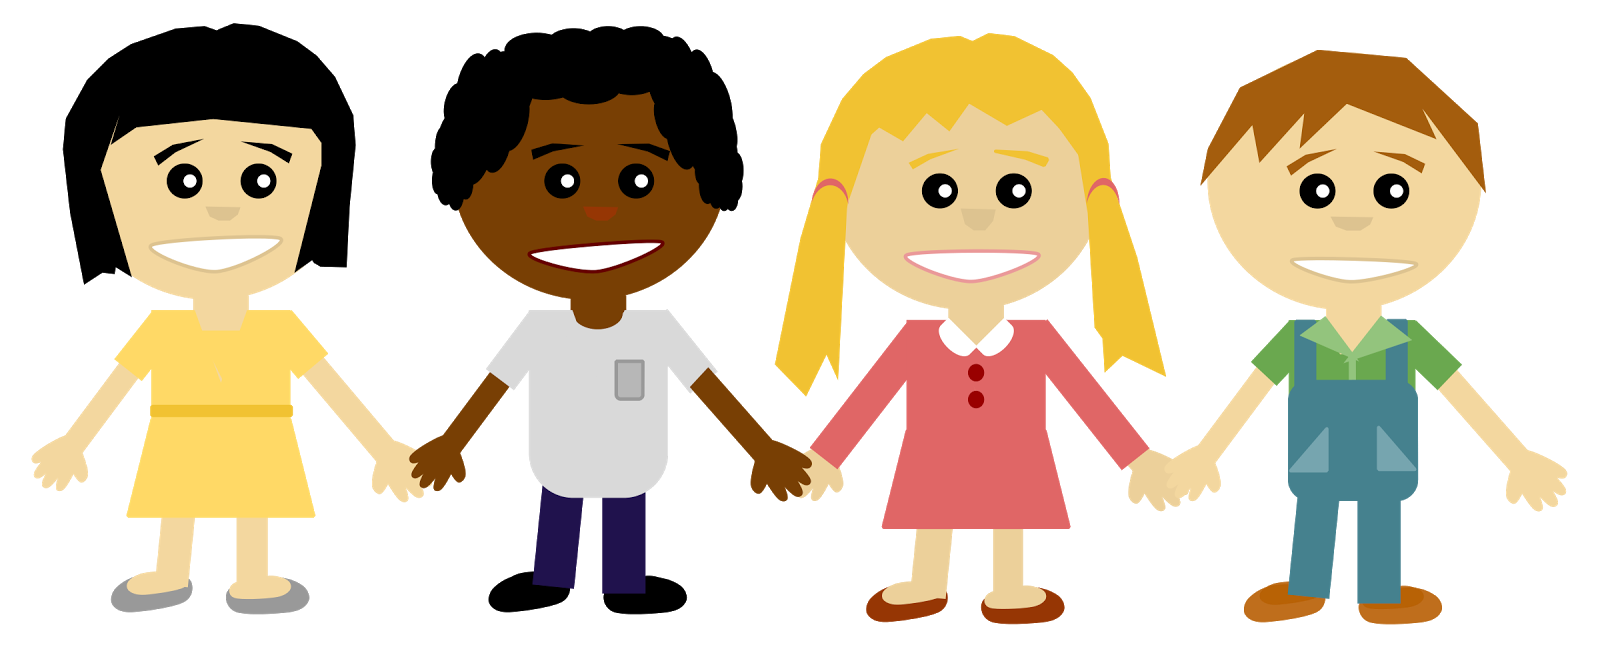 Friends at school clipart picture library library Friends Clipart | jokingart.com picture library library